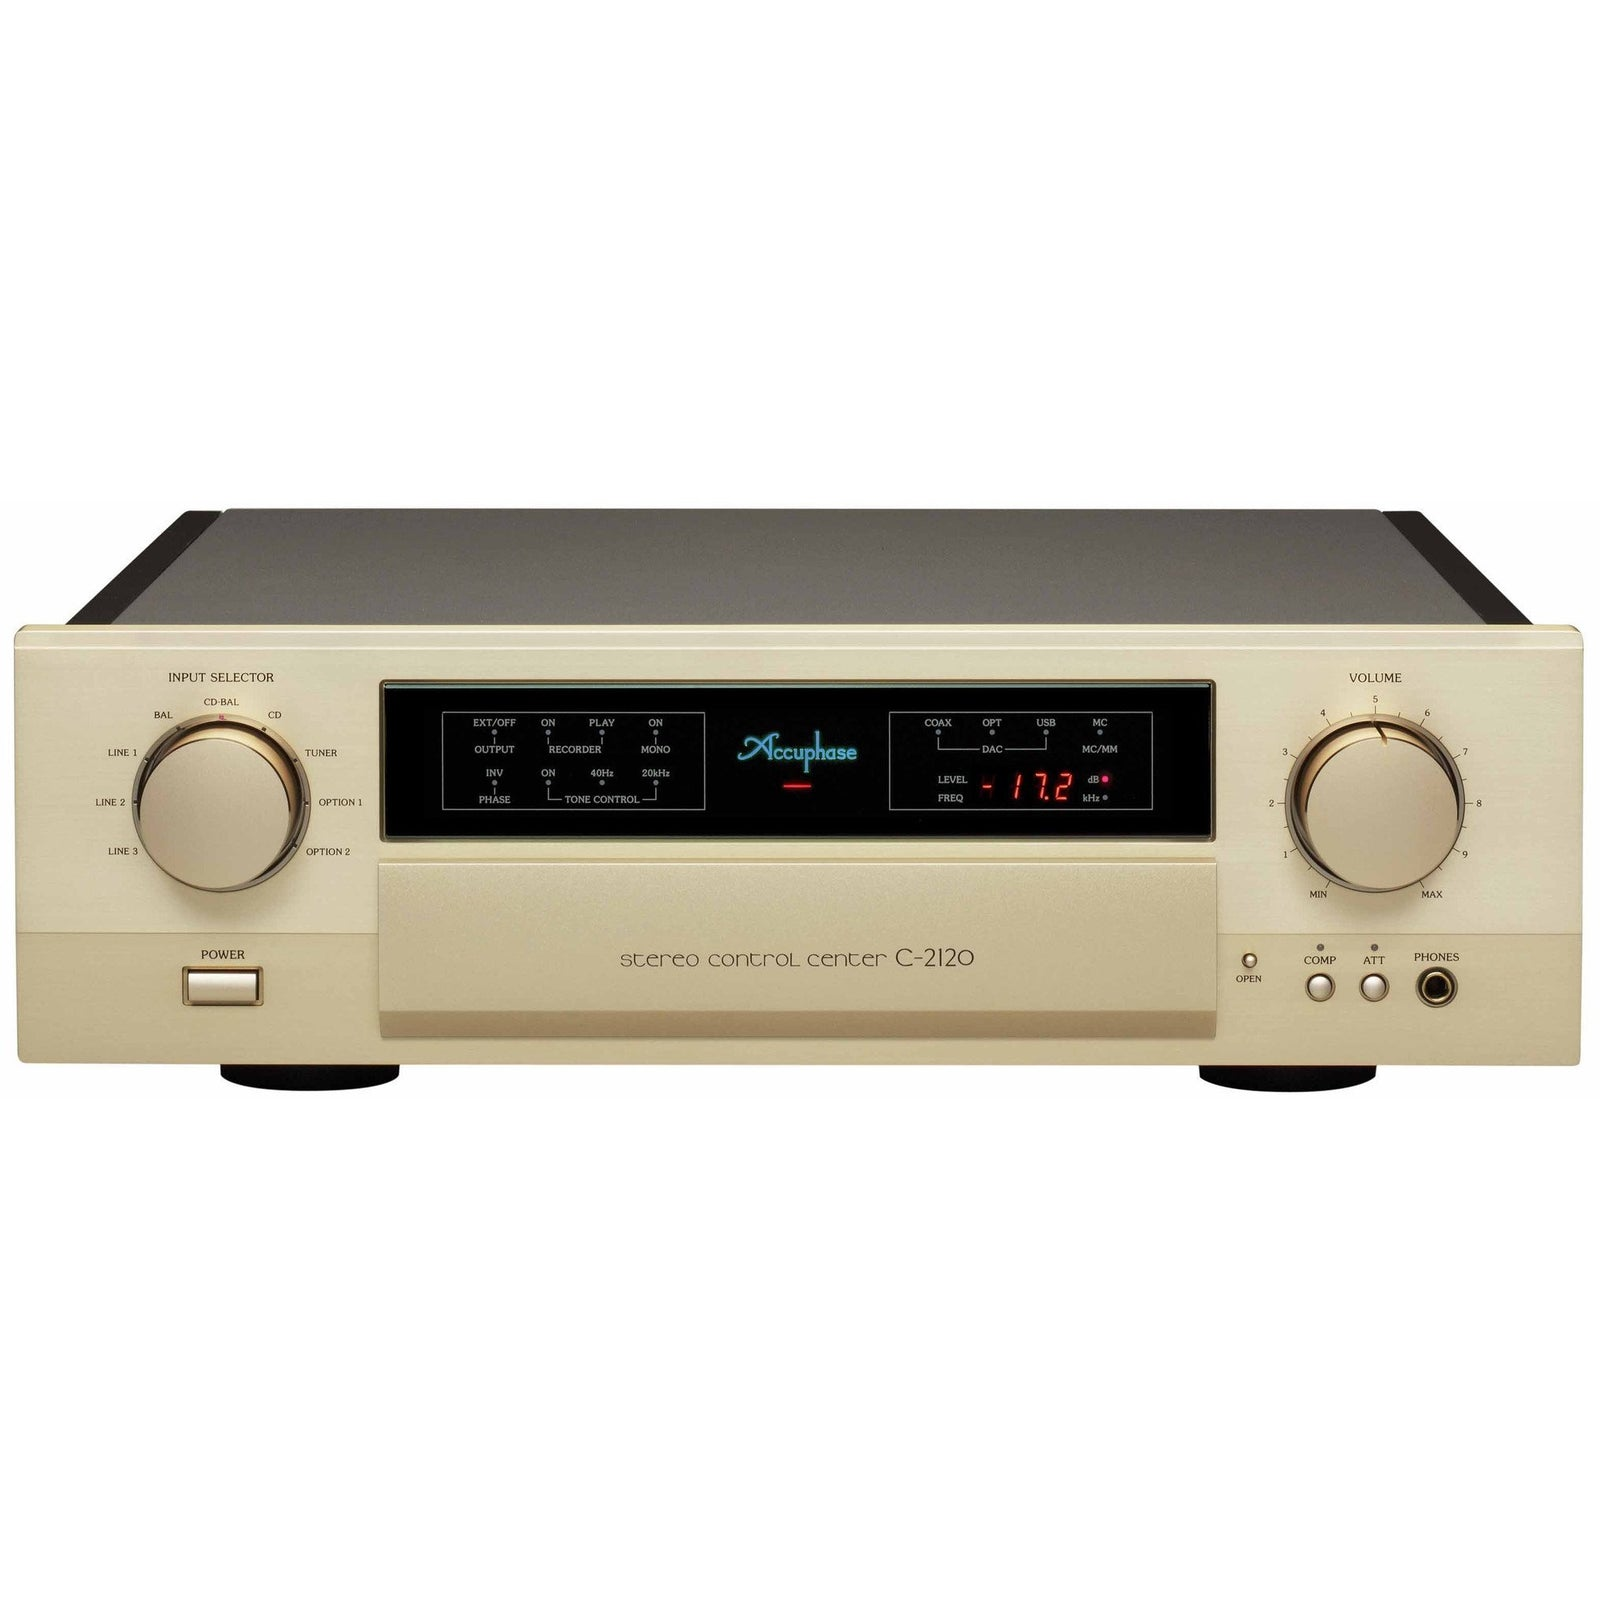 ACCUPHASE C-2120 PREAMPLIFIER - Vinyl Sound